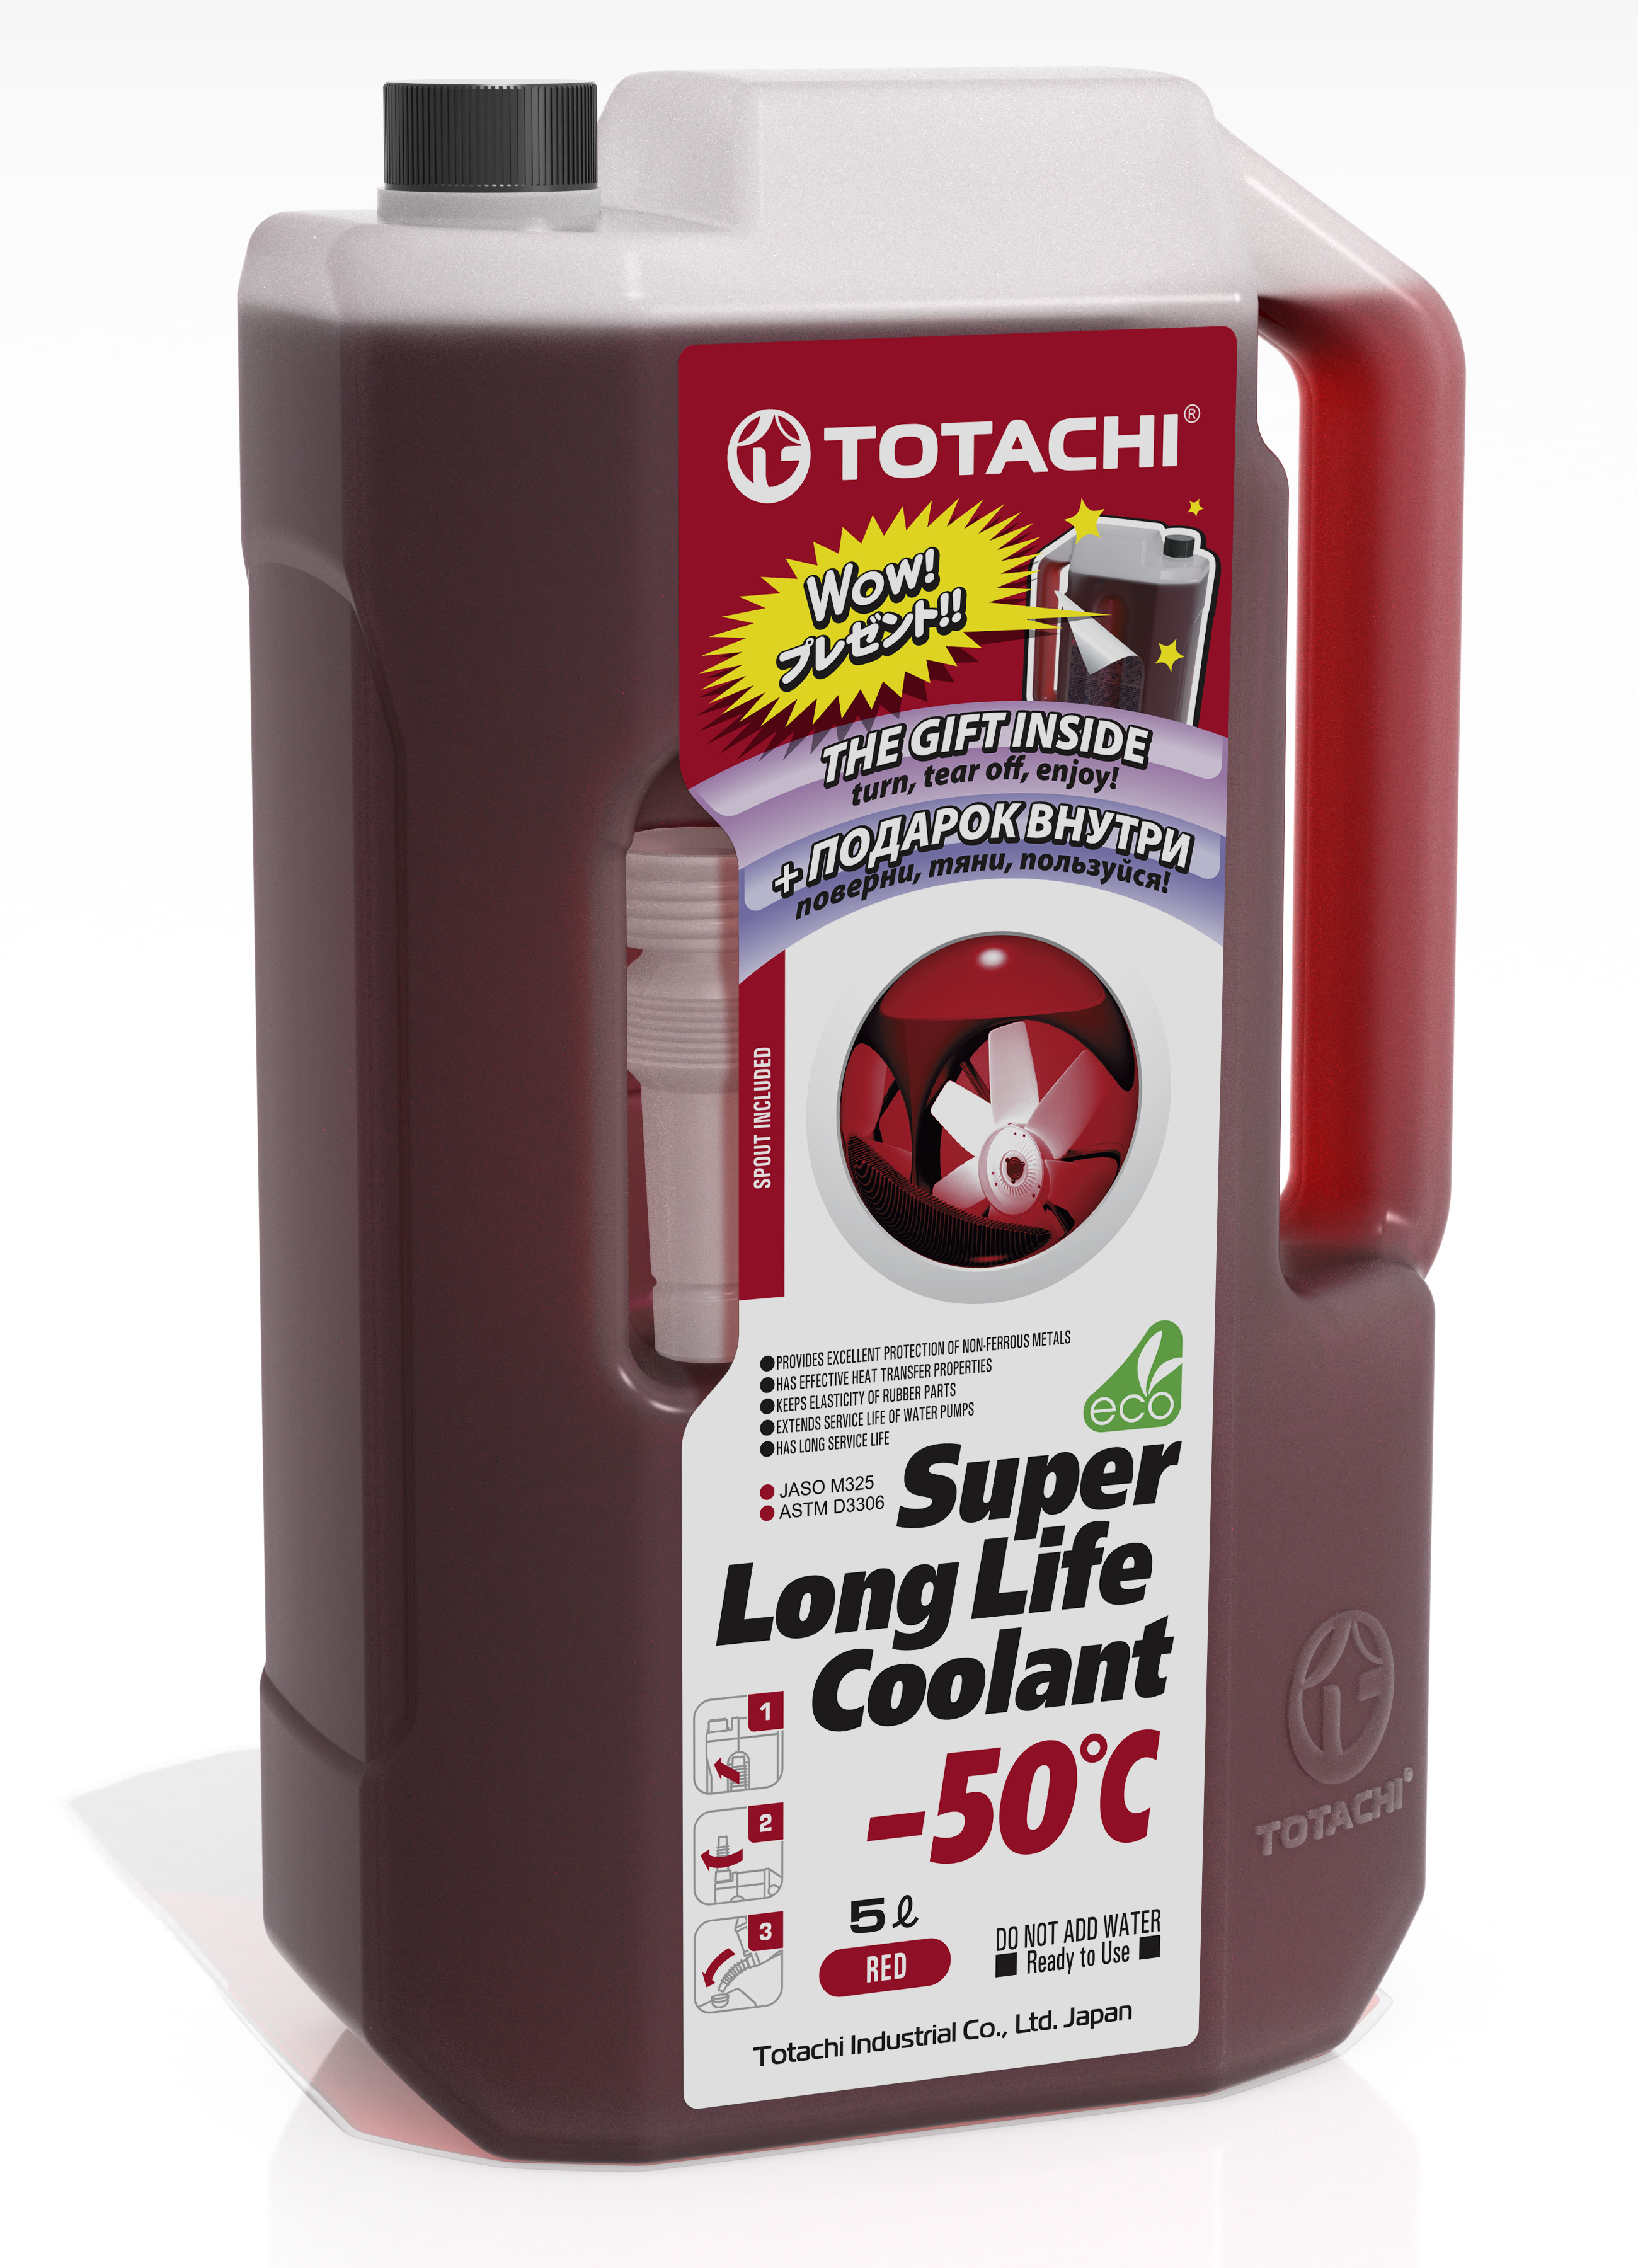 TOTACHI® SUPER LONG LIFE СOOLANT Red -50C